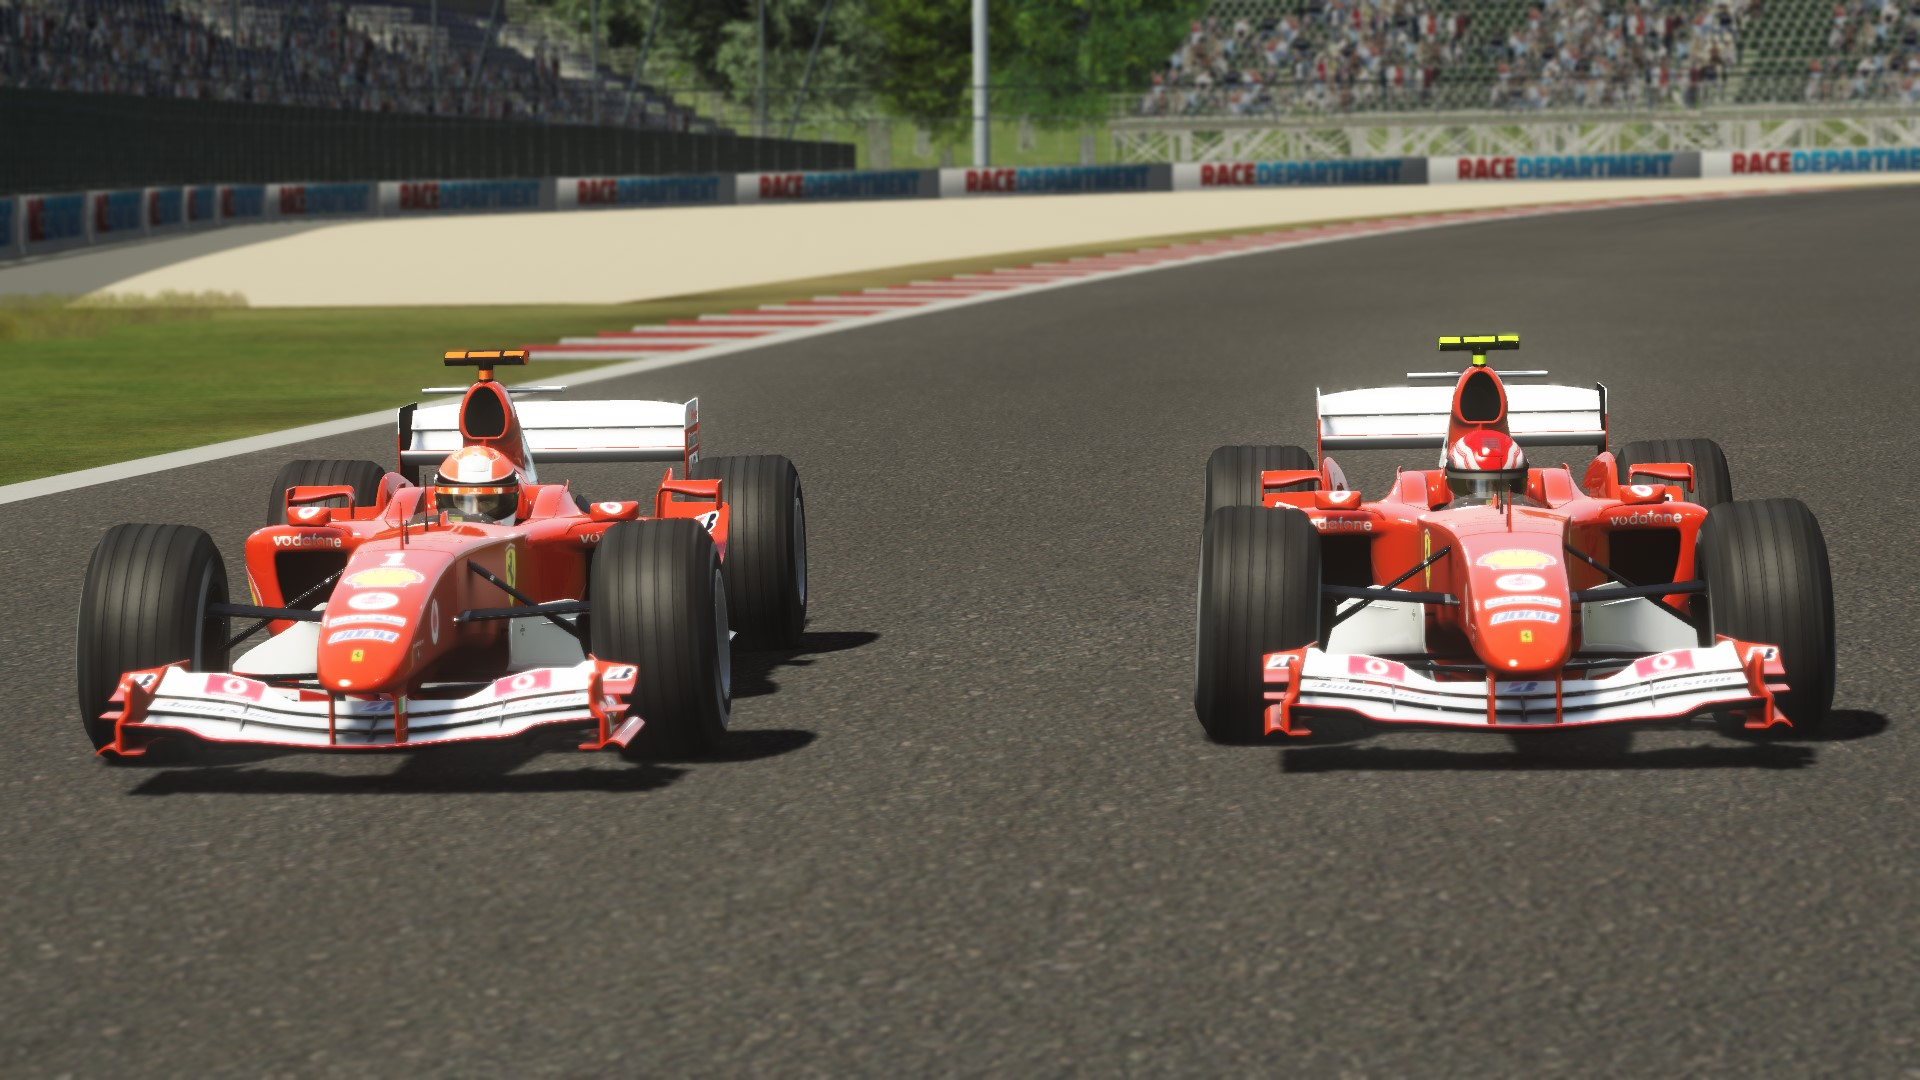 Screenshot_ks_ferrari_f2004_forliring_28-1-118-15-3-39.jpg